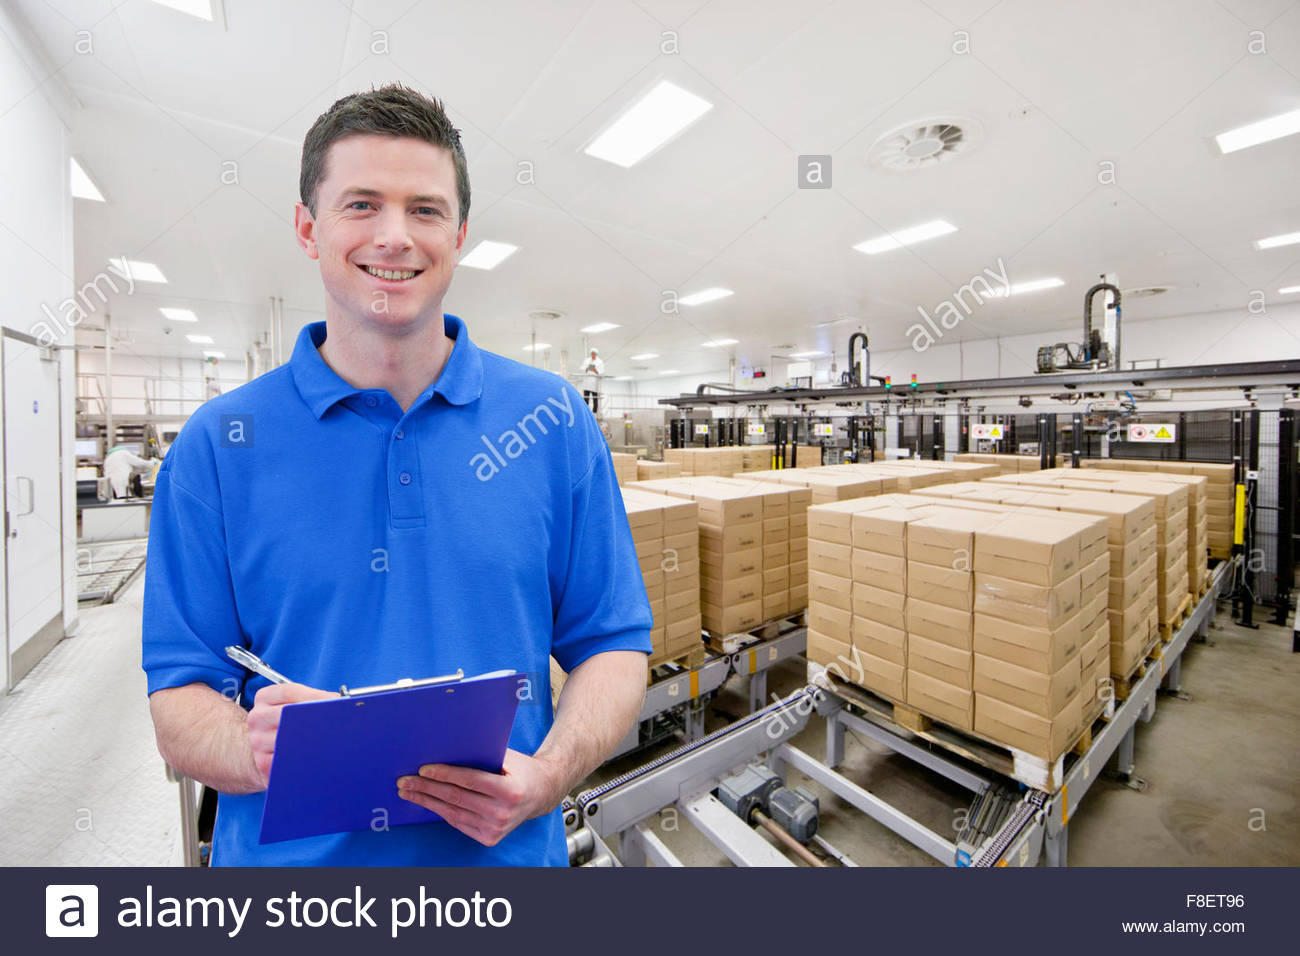 Portrait of smiling worker with clipboard at food packaging production line - Stock Image